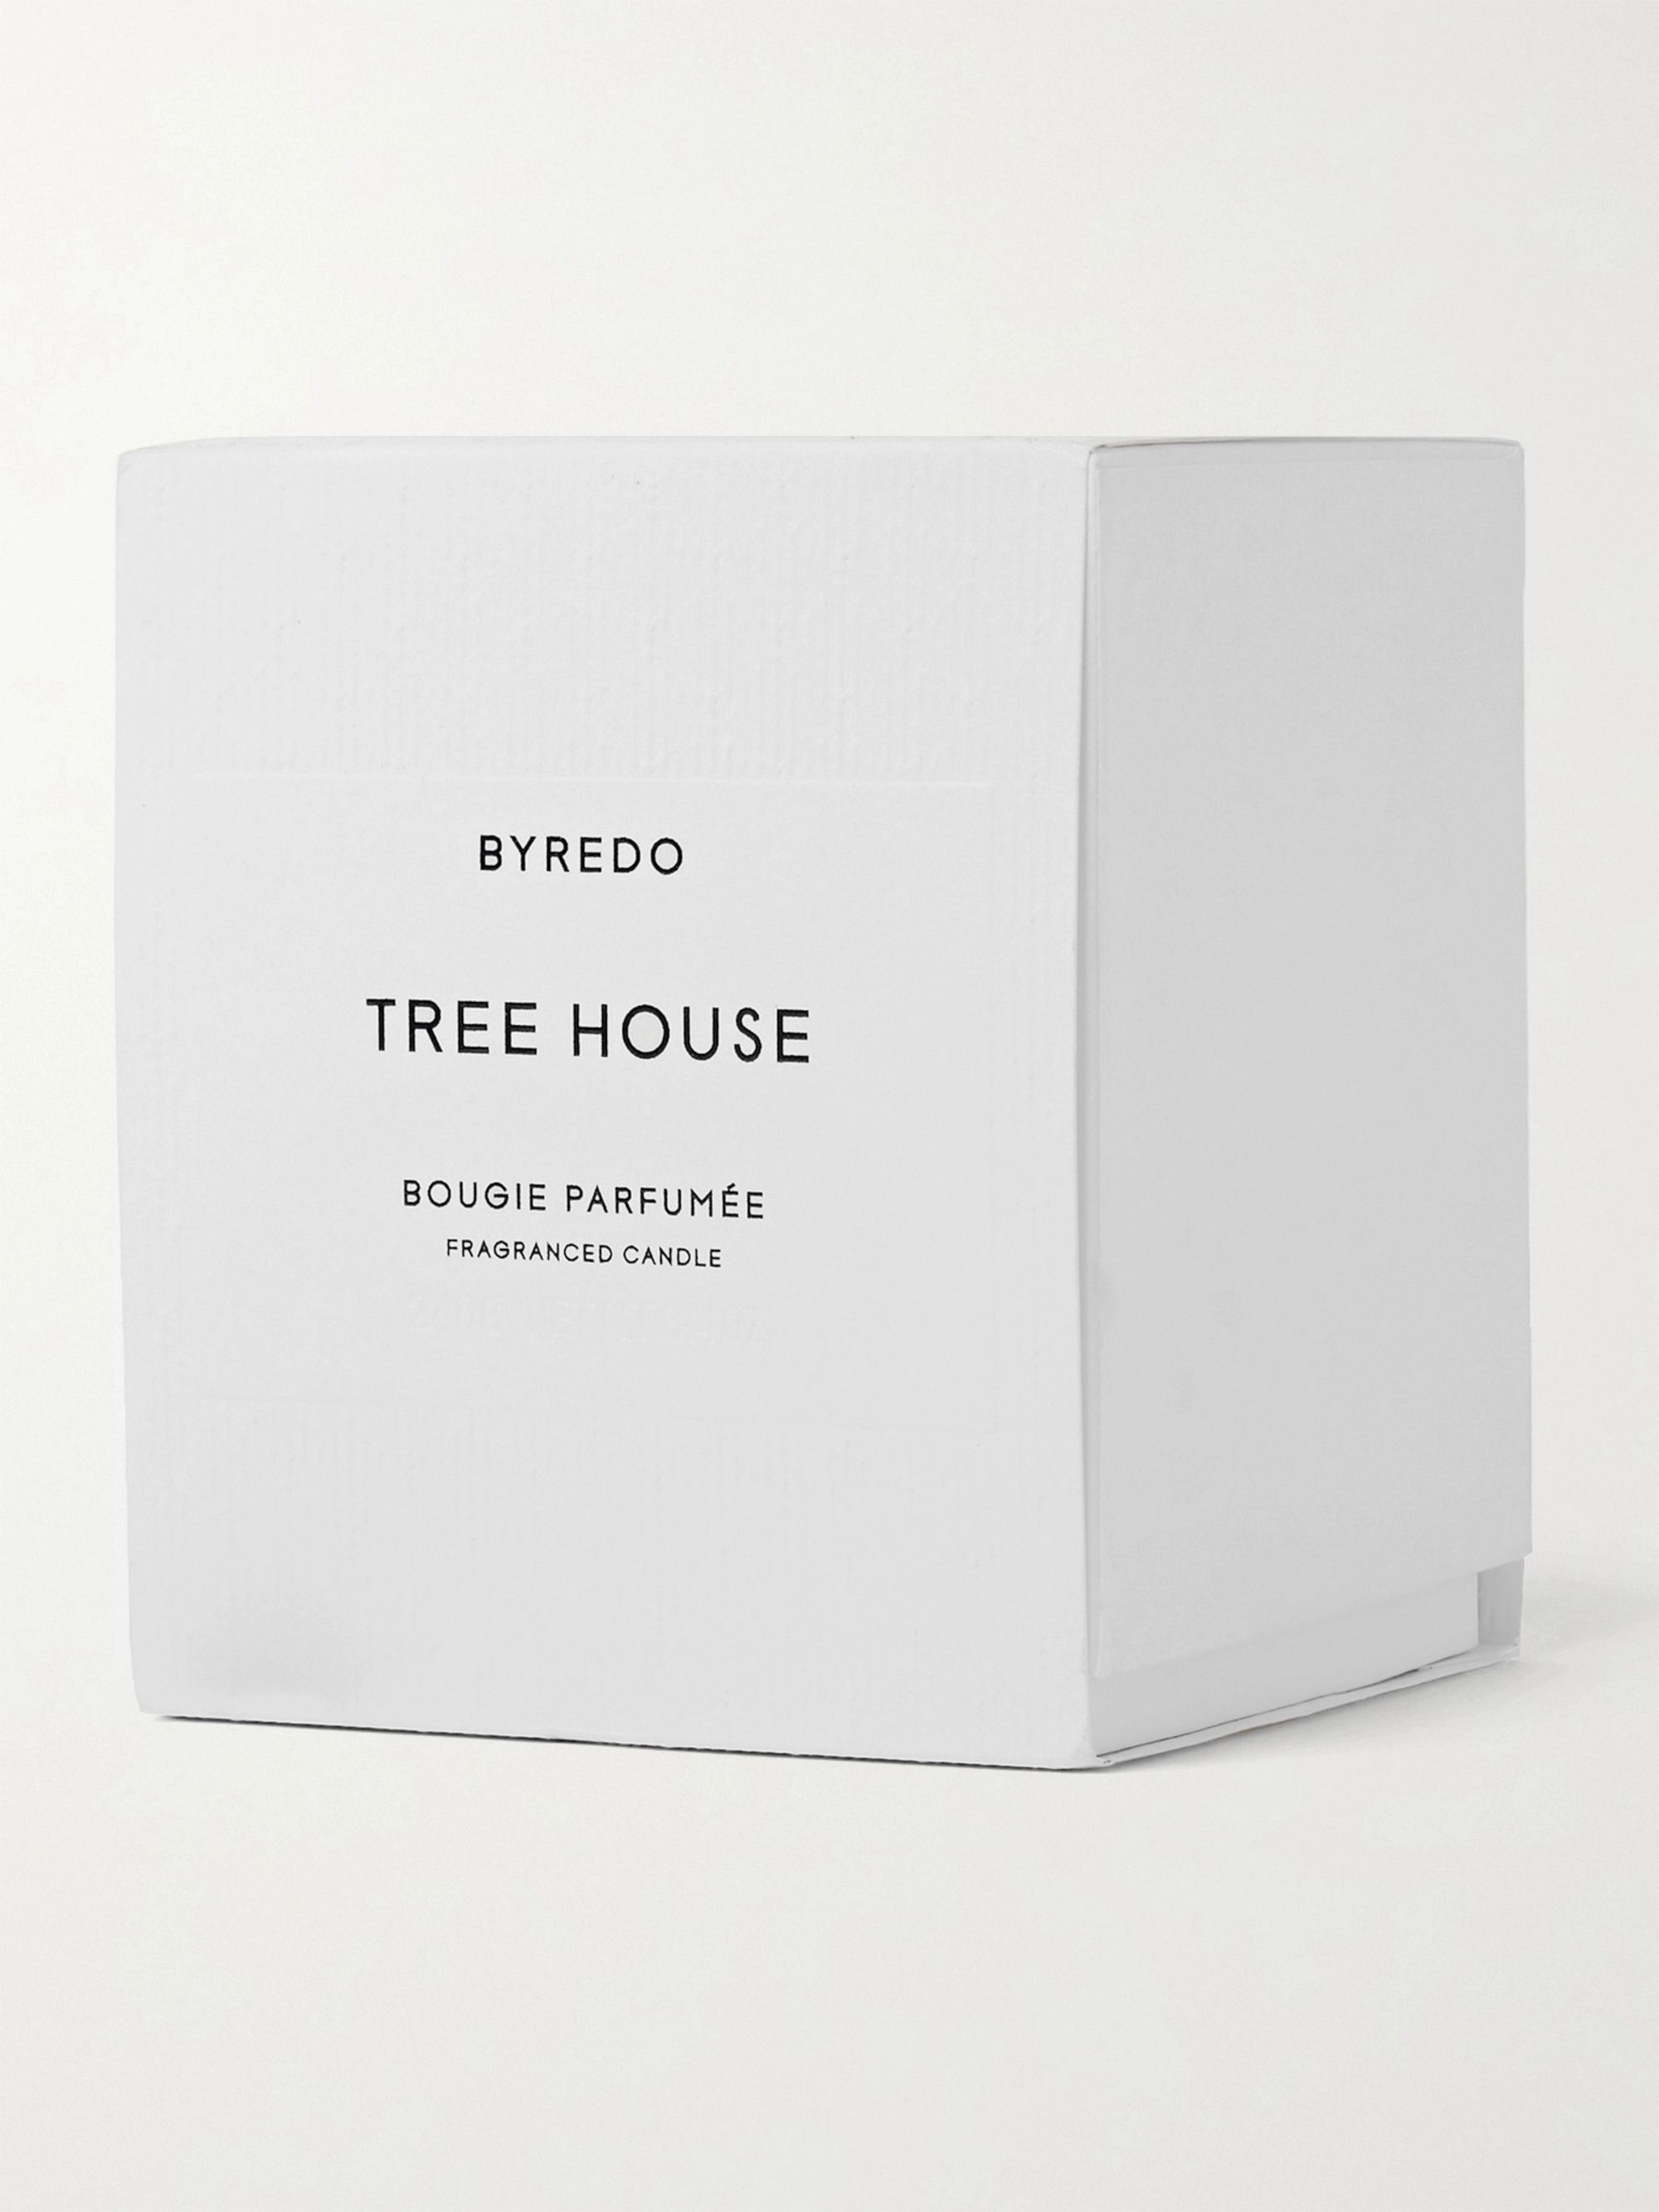 Byredo Tree House Scented Candle, 240g